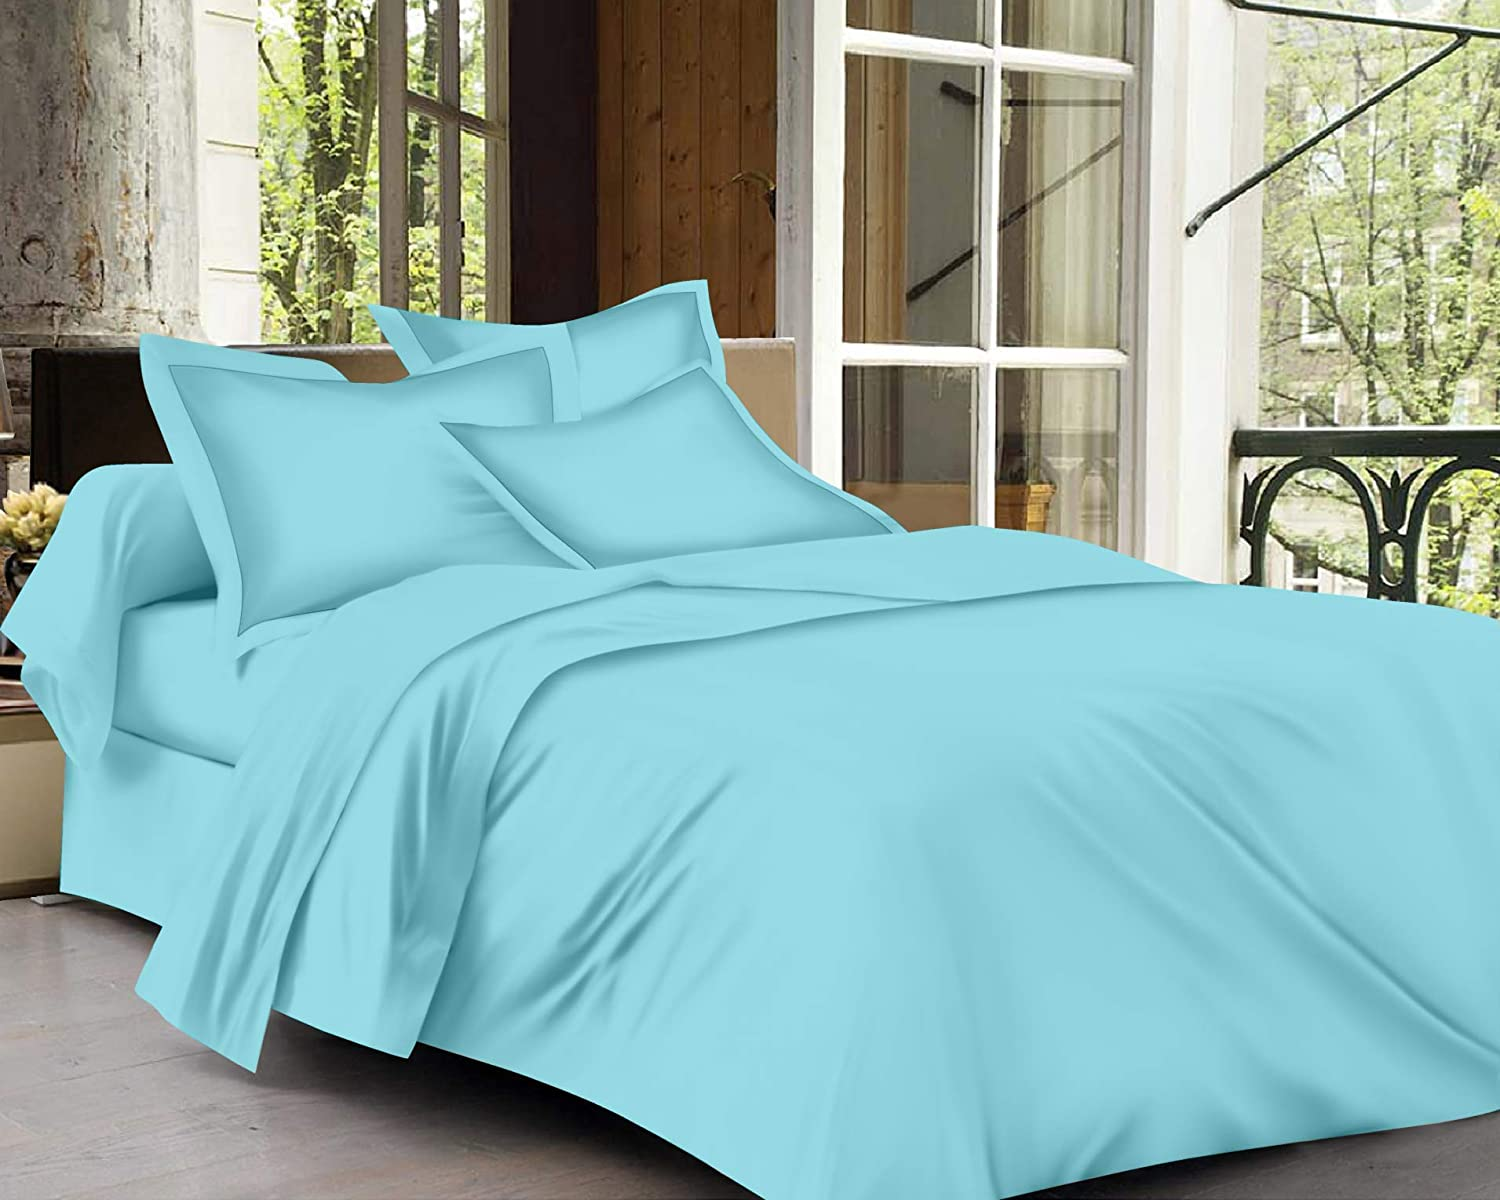 Trance Home Linen Cotton 400TC Plain Bed Sheet with Pillow Cover-Sky Blue